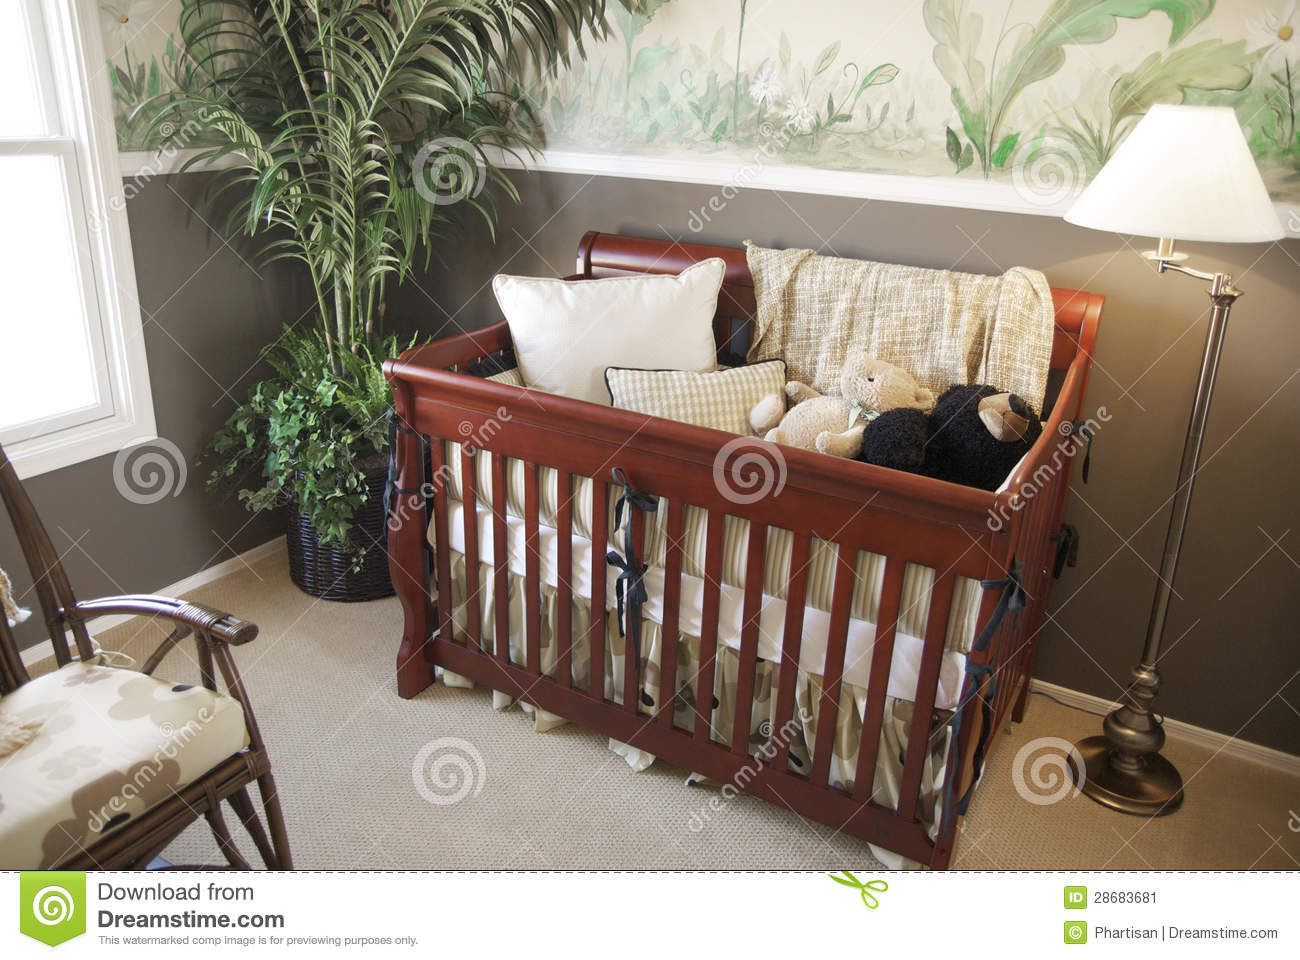 Wooden crib for babies - Cherry Wood Baby Crib In Nursery Interior